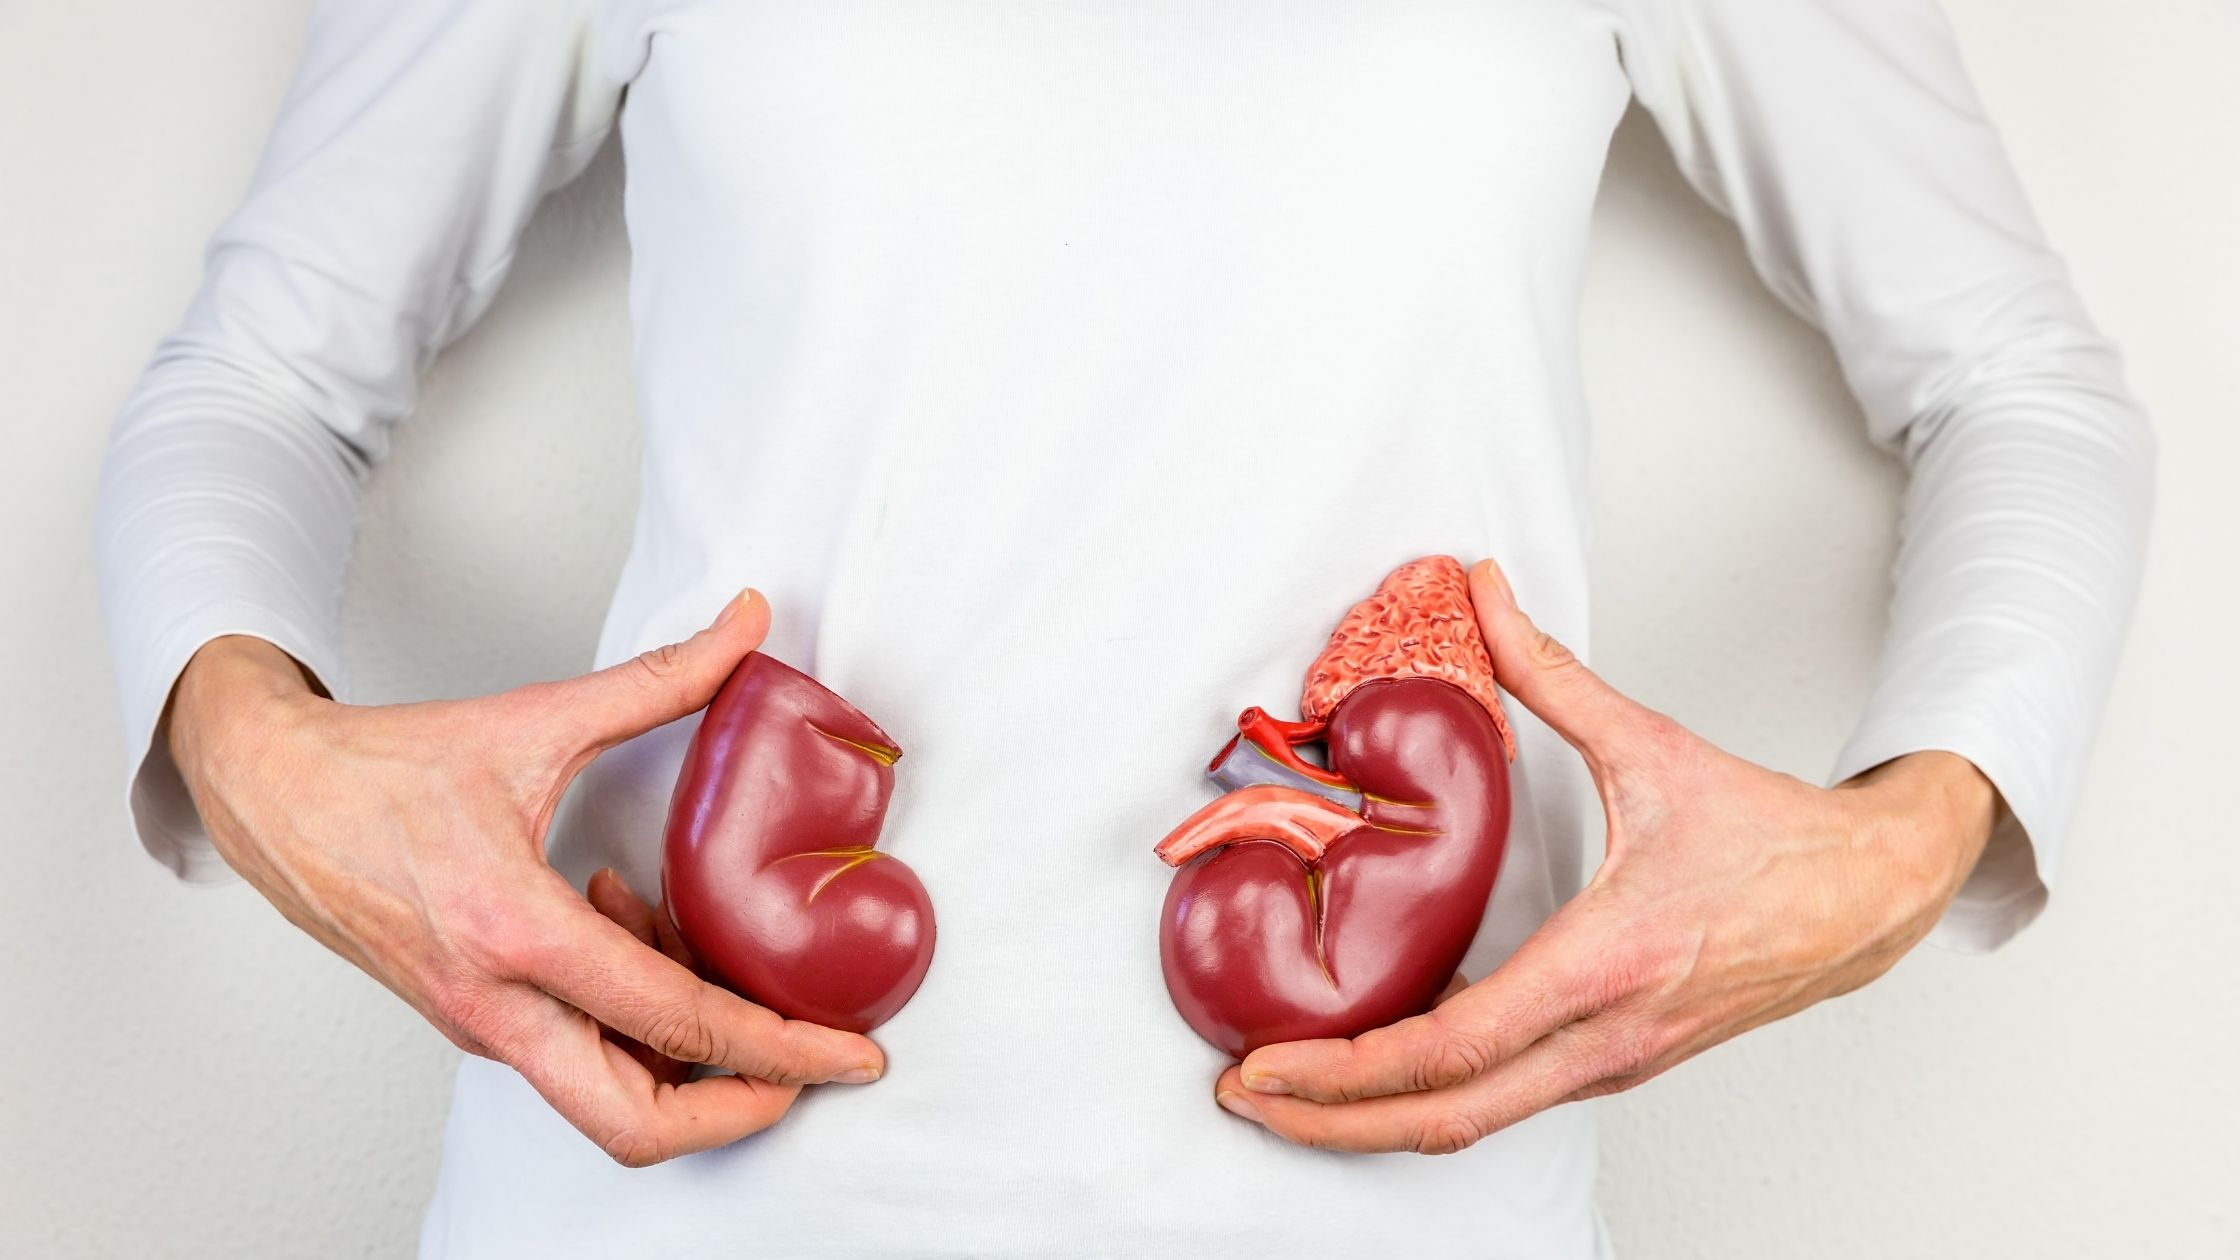 5 Habits That May Increase Your Risk of Kidney Stones